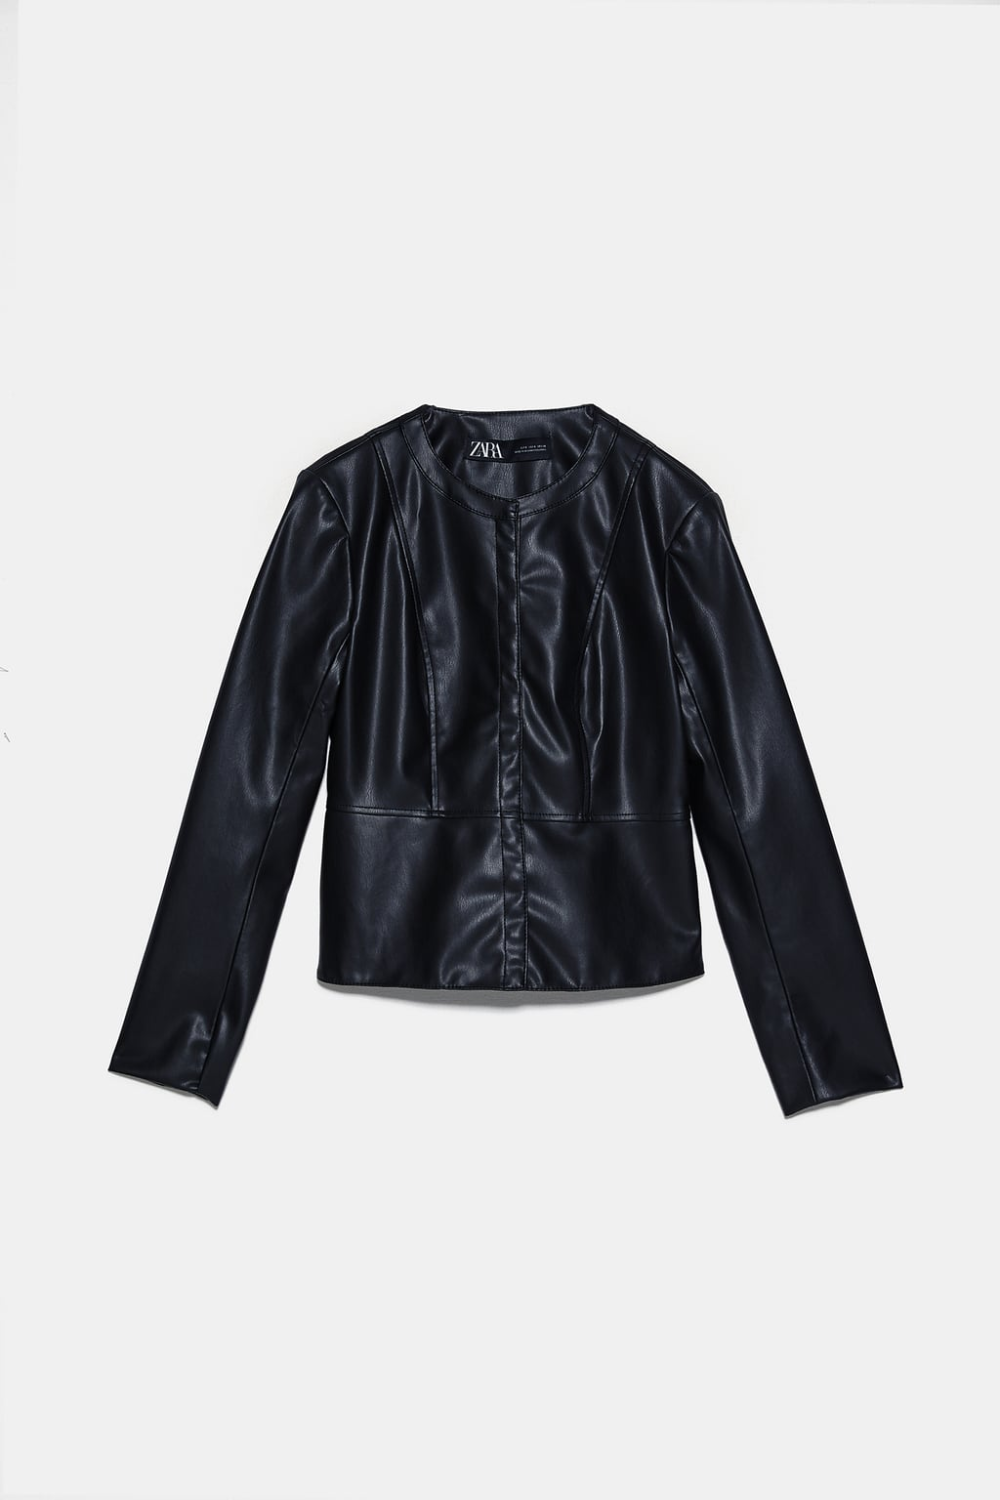 Faux Leather Jacket Zara United States In 2020 Faux Leather Jackets Jackets Leather Jacket Details